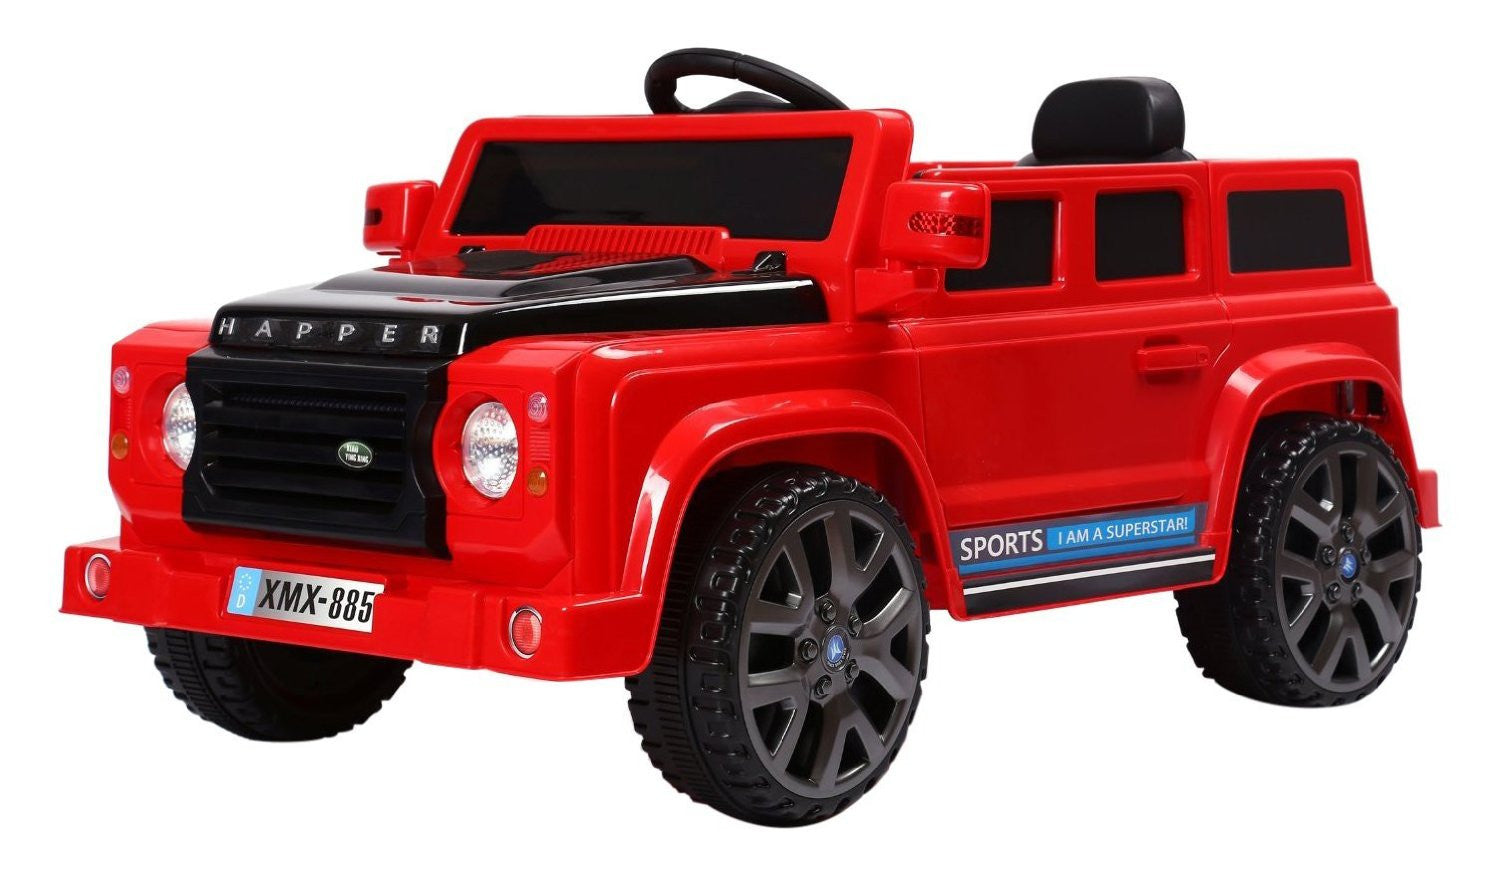 6v 50w Battery Powered Land Rover Style Twin Motor Electric Toy Car